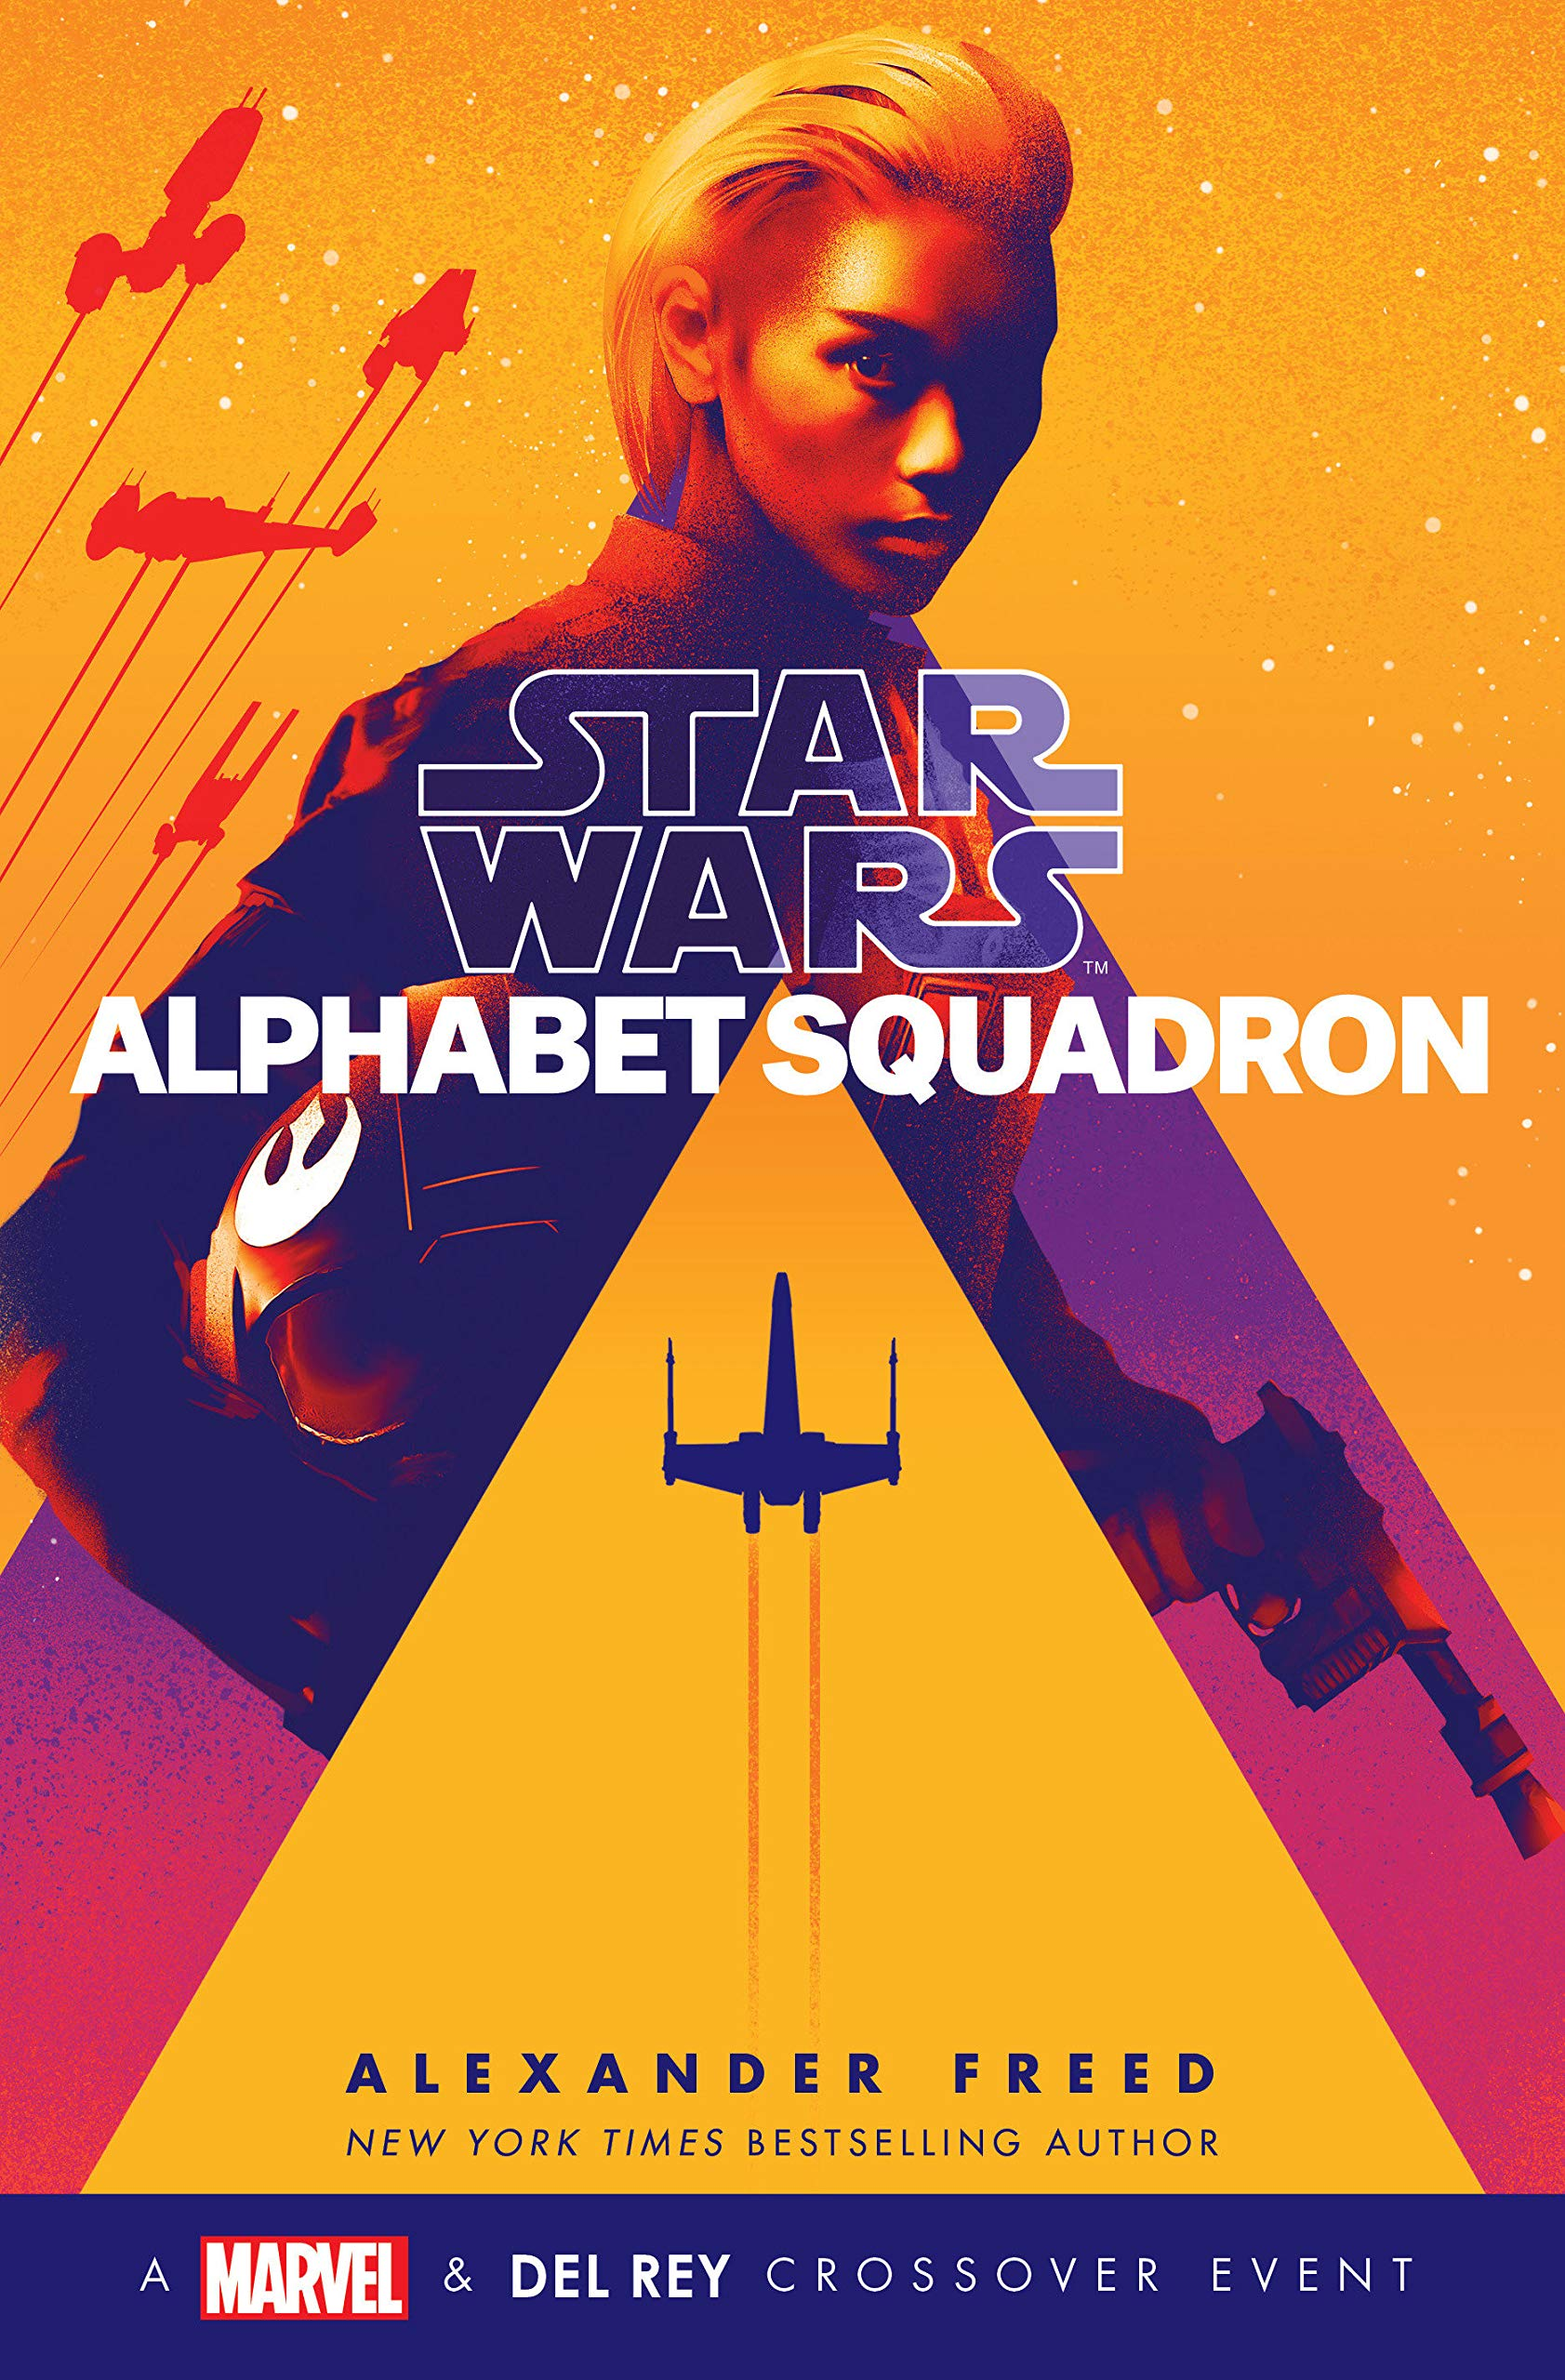 Friday Reads: Star Wars: Alphabet Squadron by Alexander Freed